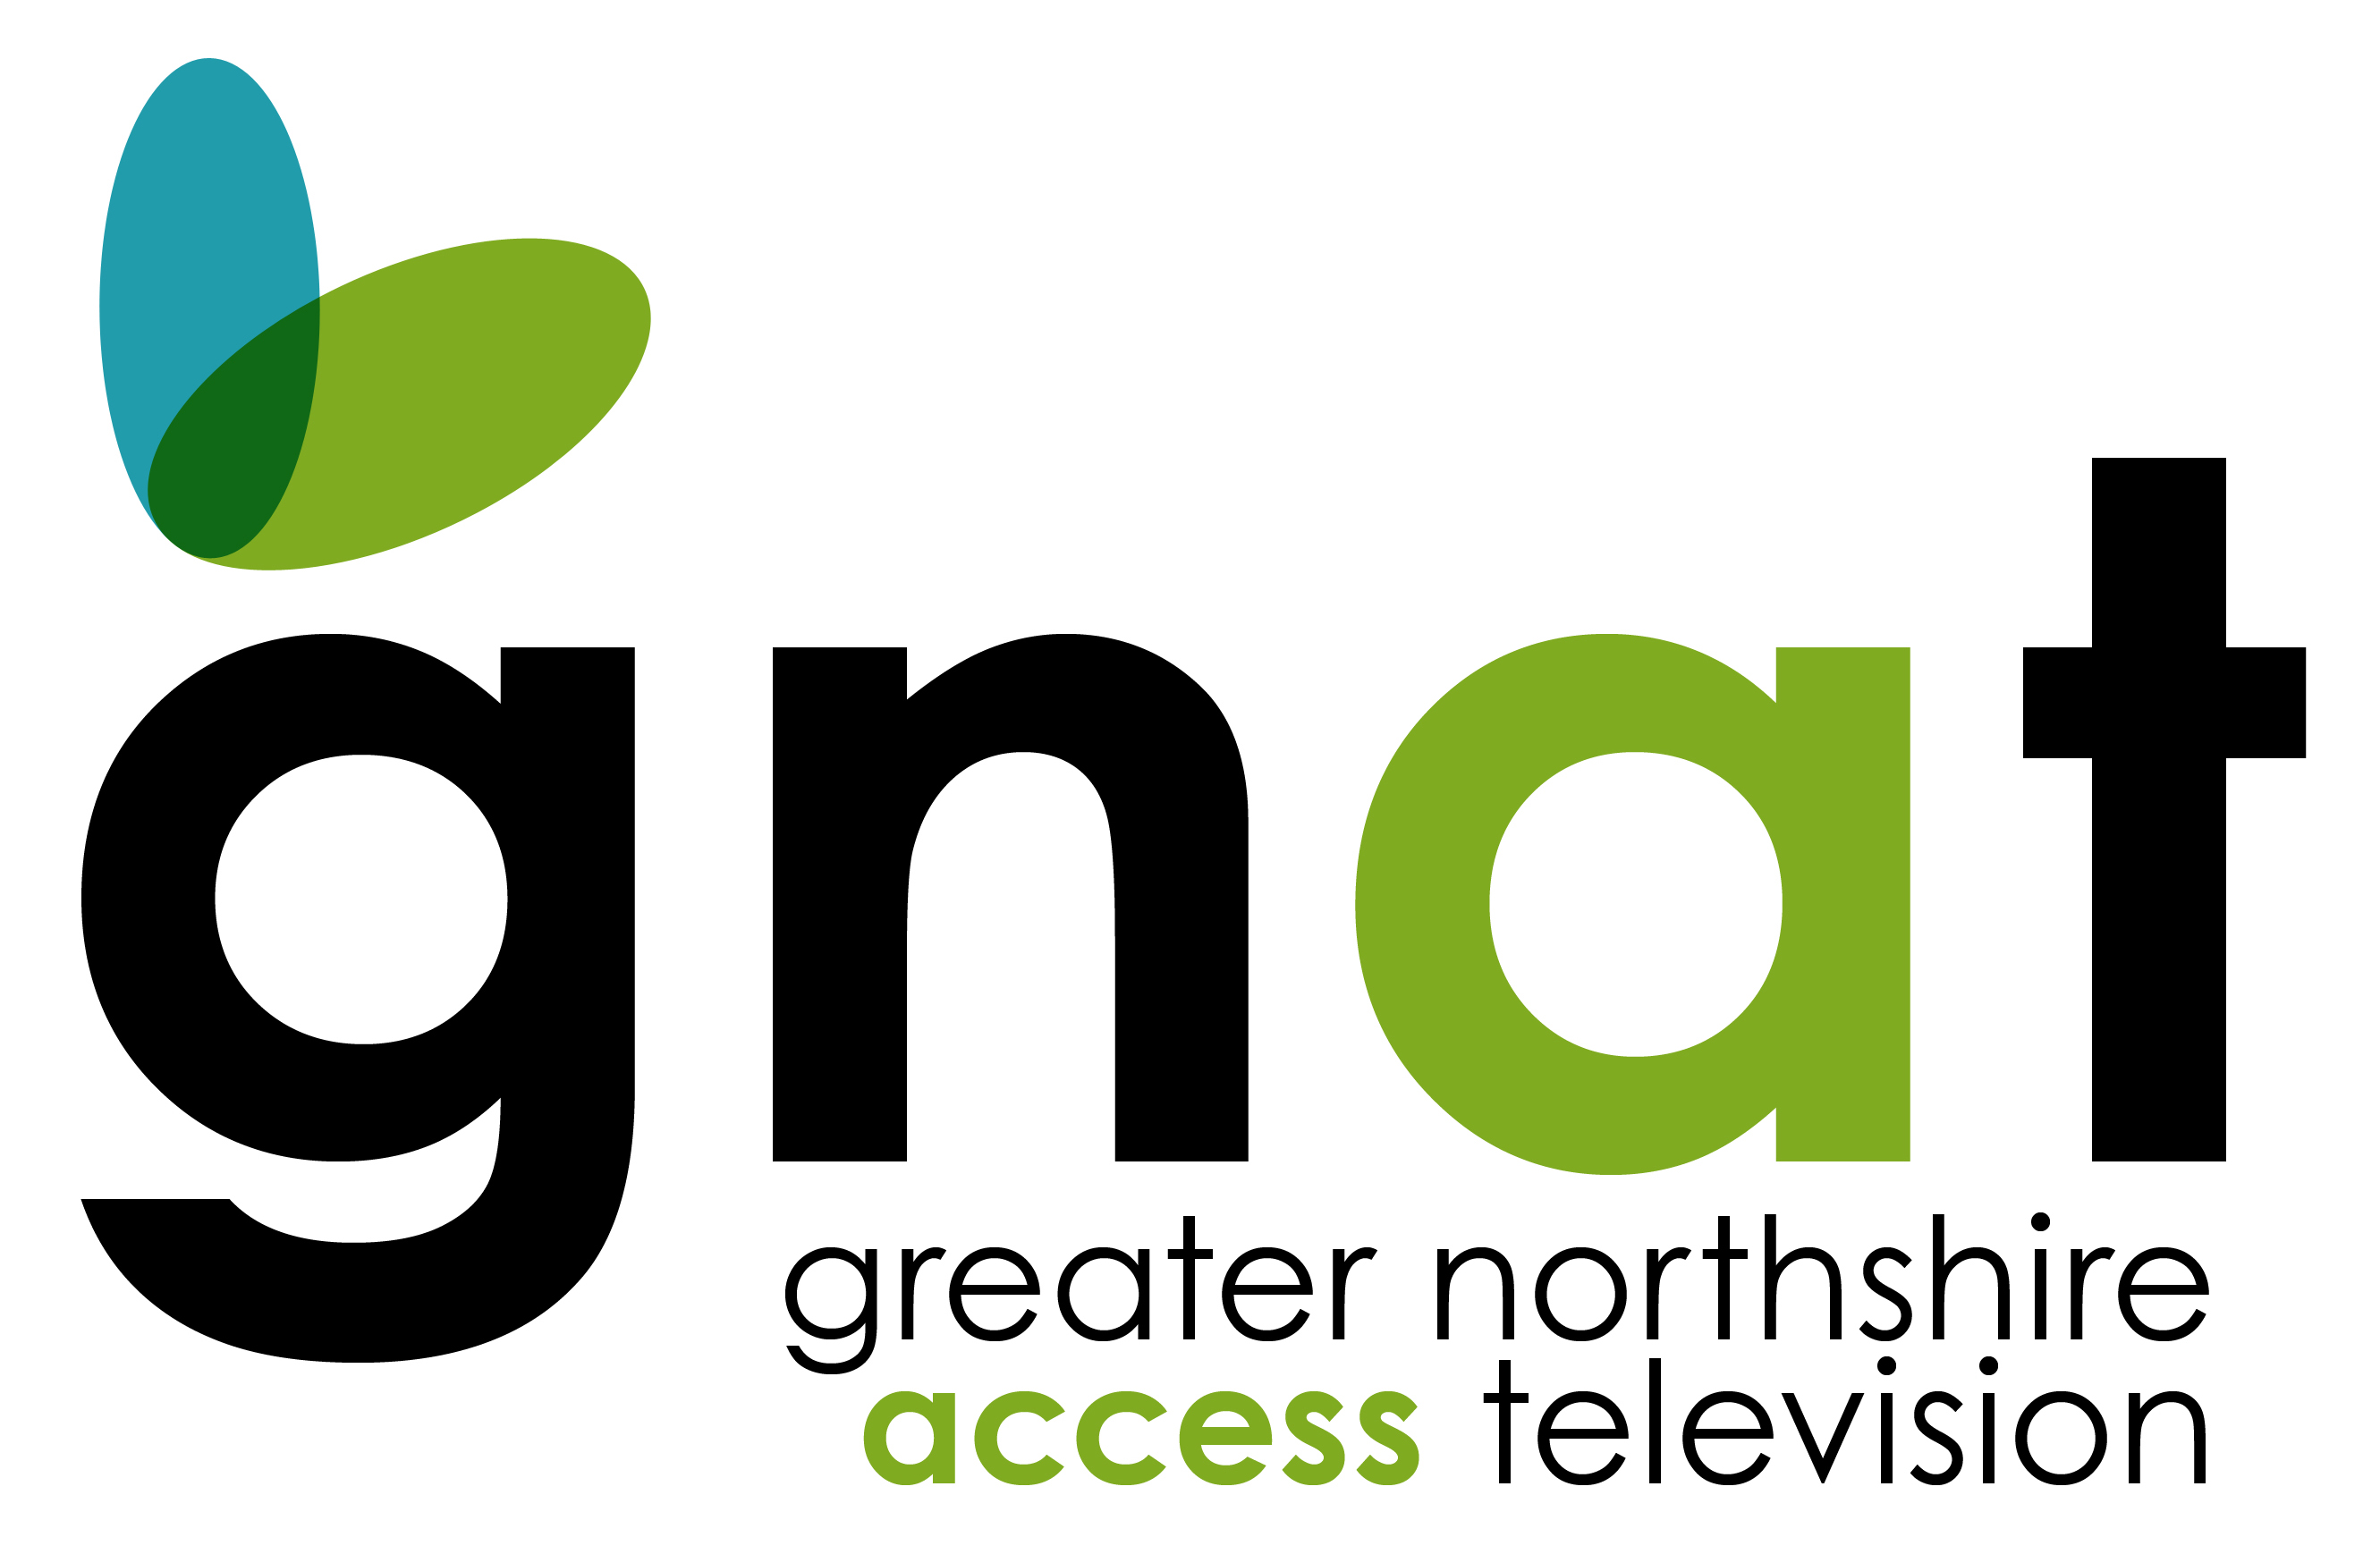 Greater Northshire Access Television